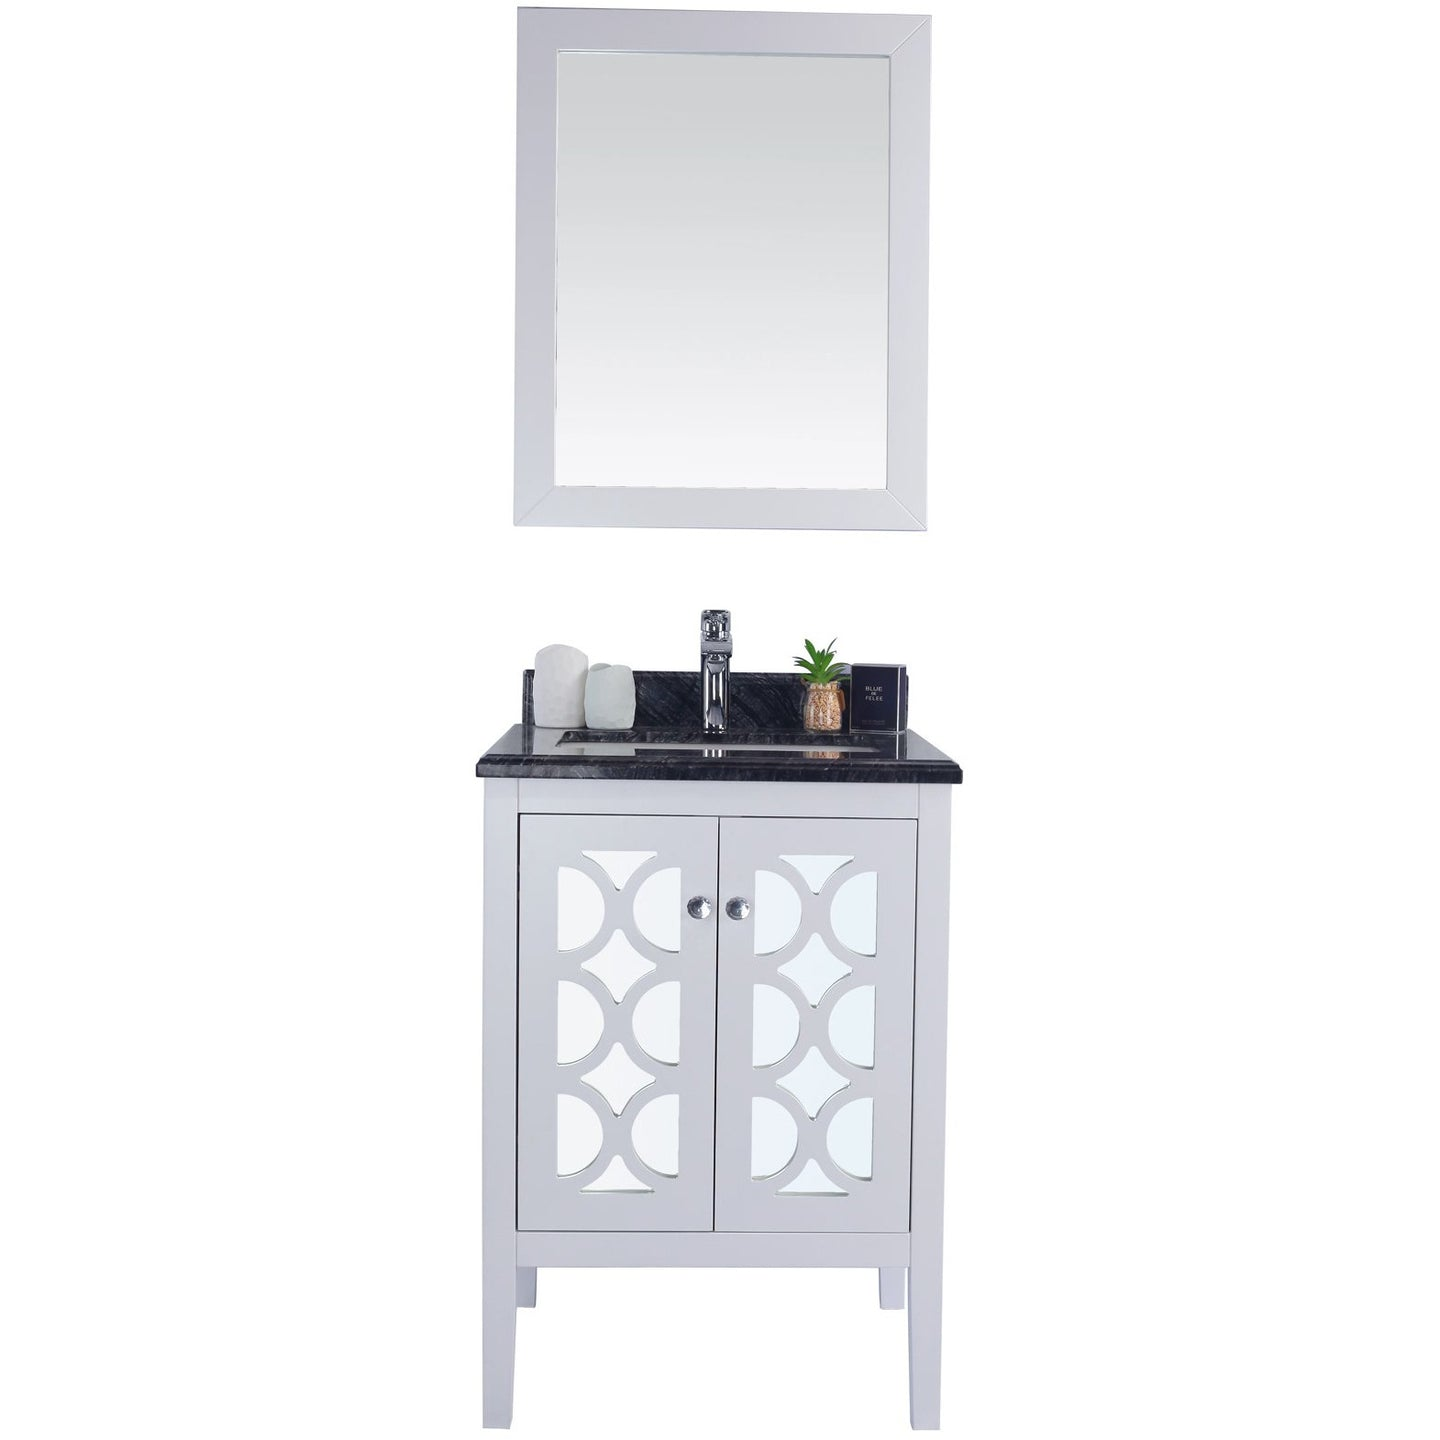 Mediterraneo - 24 - White Cabinet + Black Wood Counter by Laviva